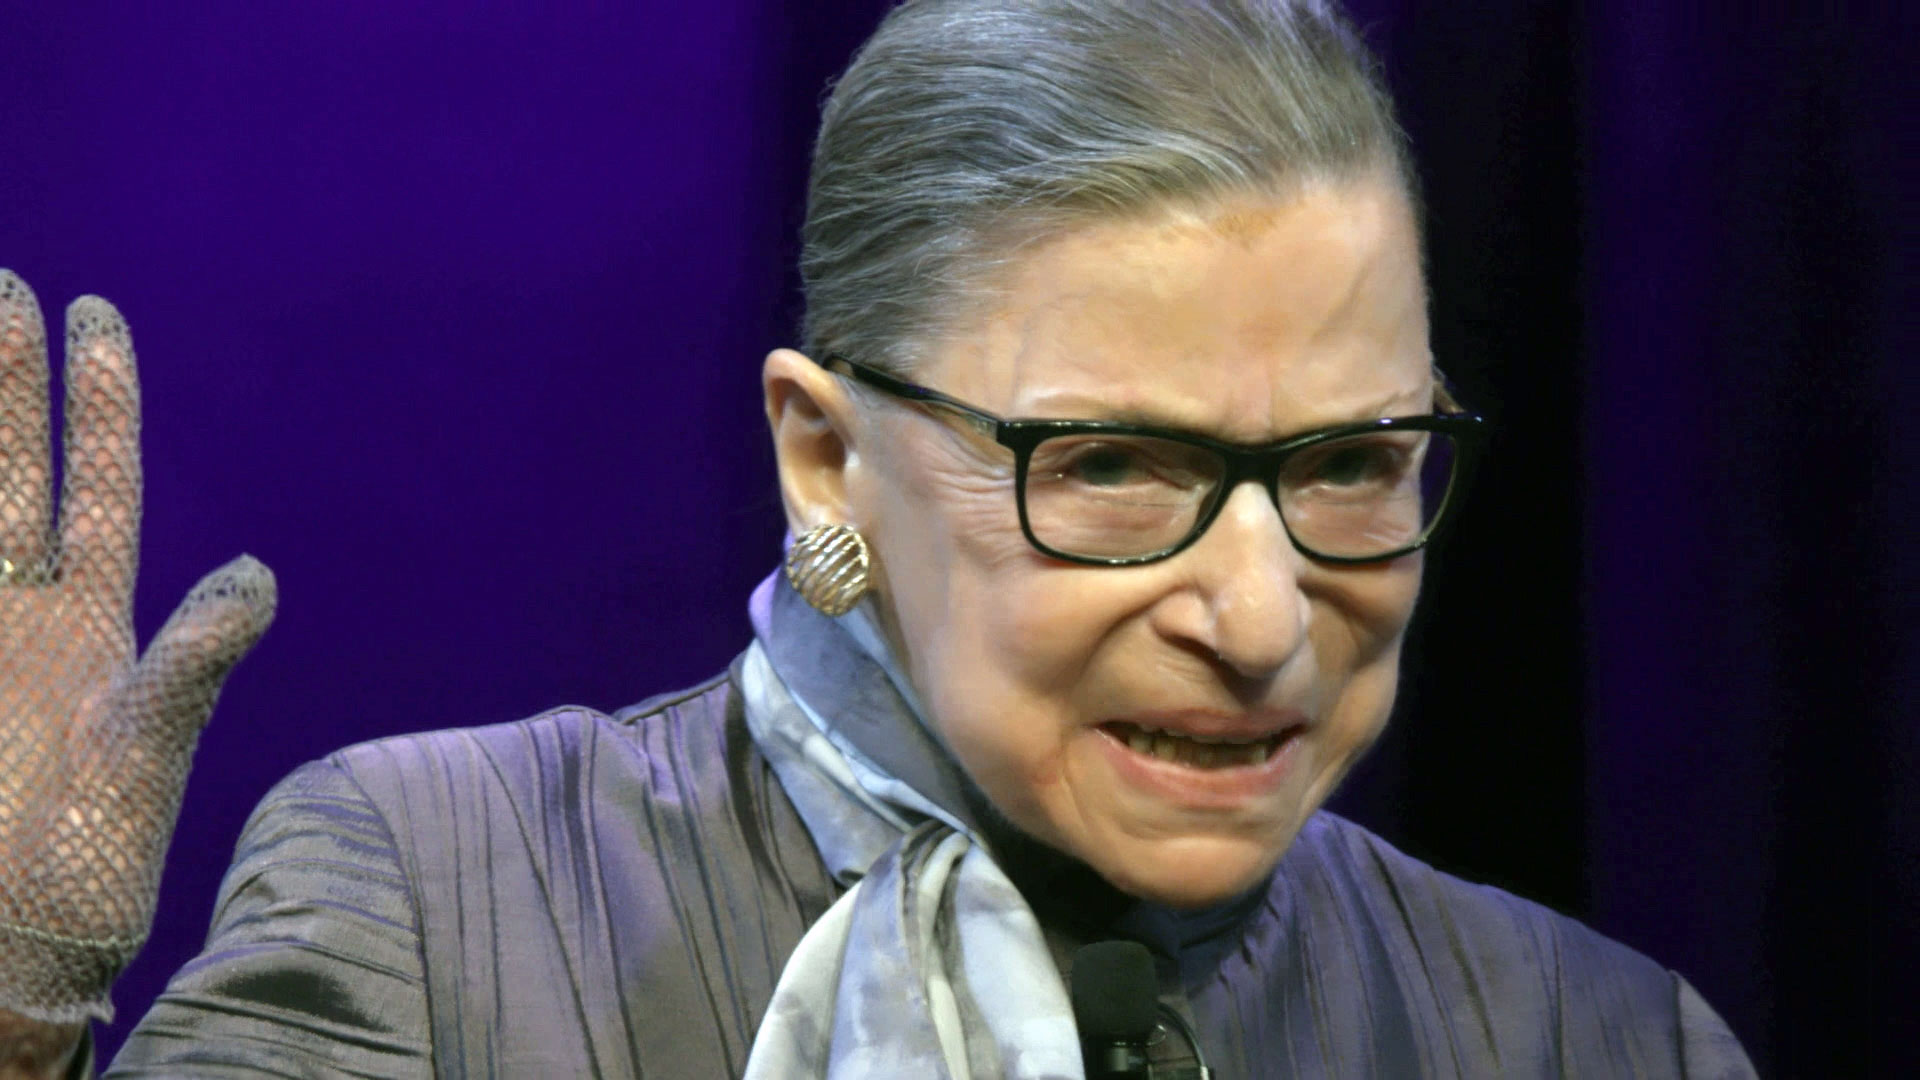 Associate Justice of the Supreme Court of the United States, Ruth Bader Ginsburg in RBG, a Magnolia Pictures release. Photo courtesy of Magnolia Pictures/ CNN Films.